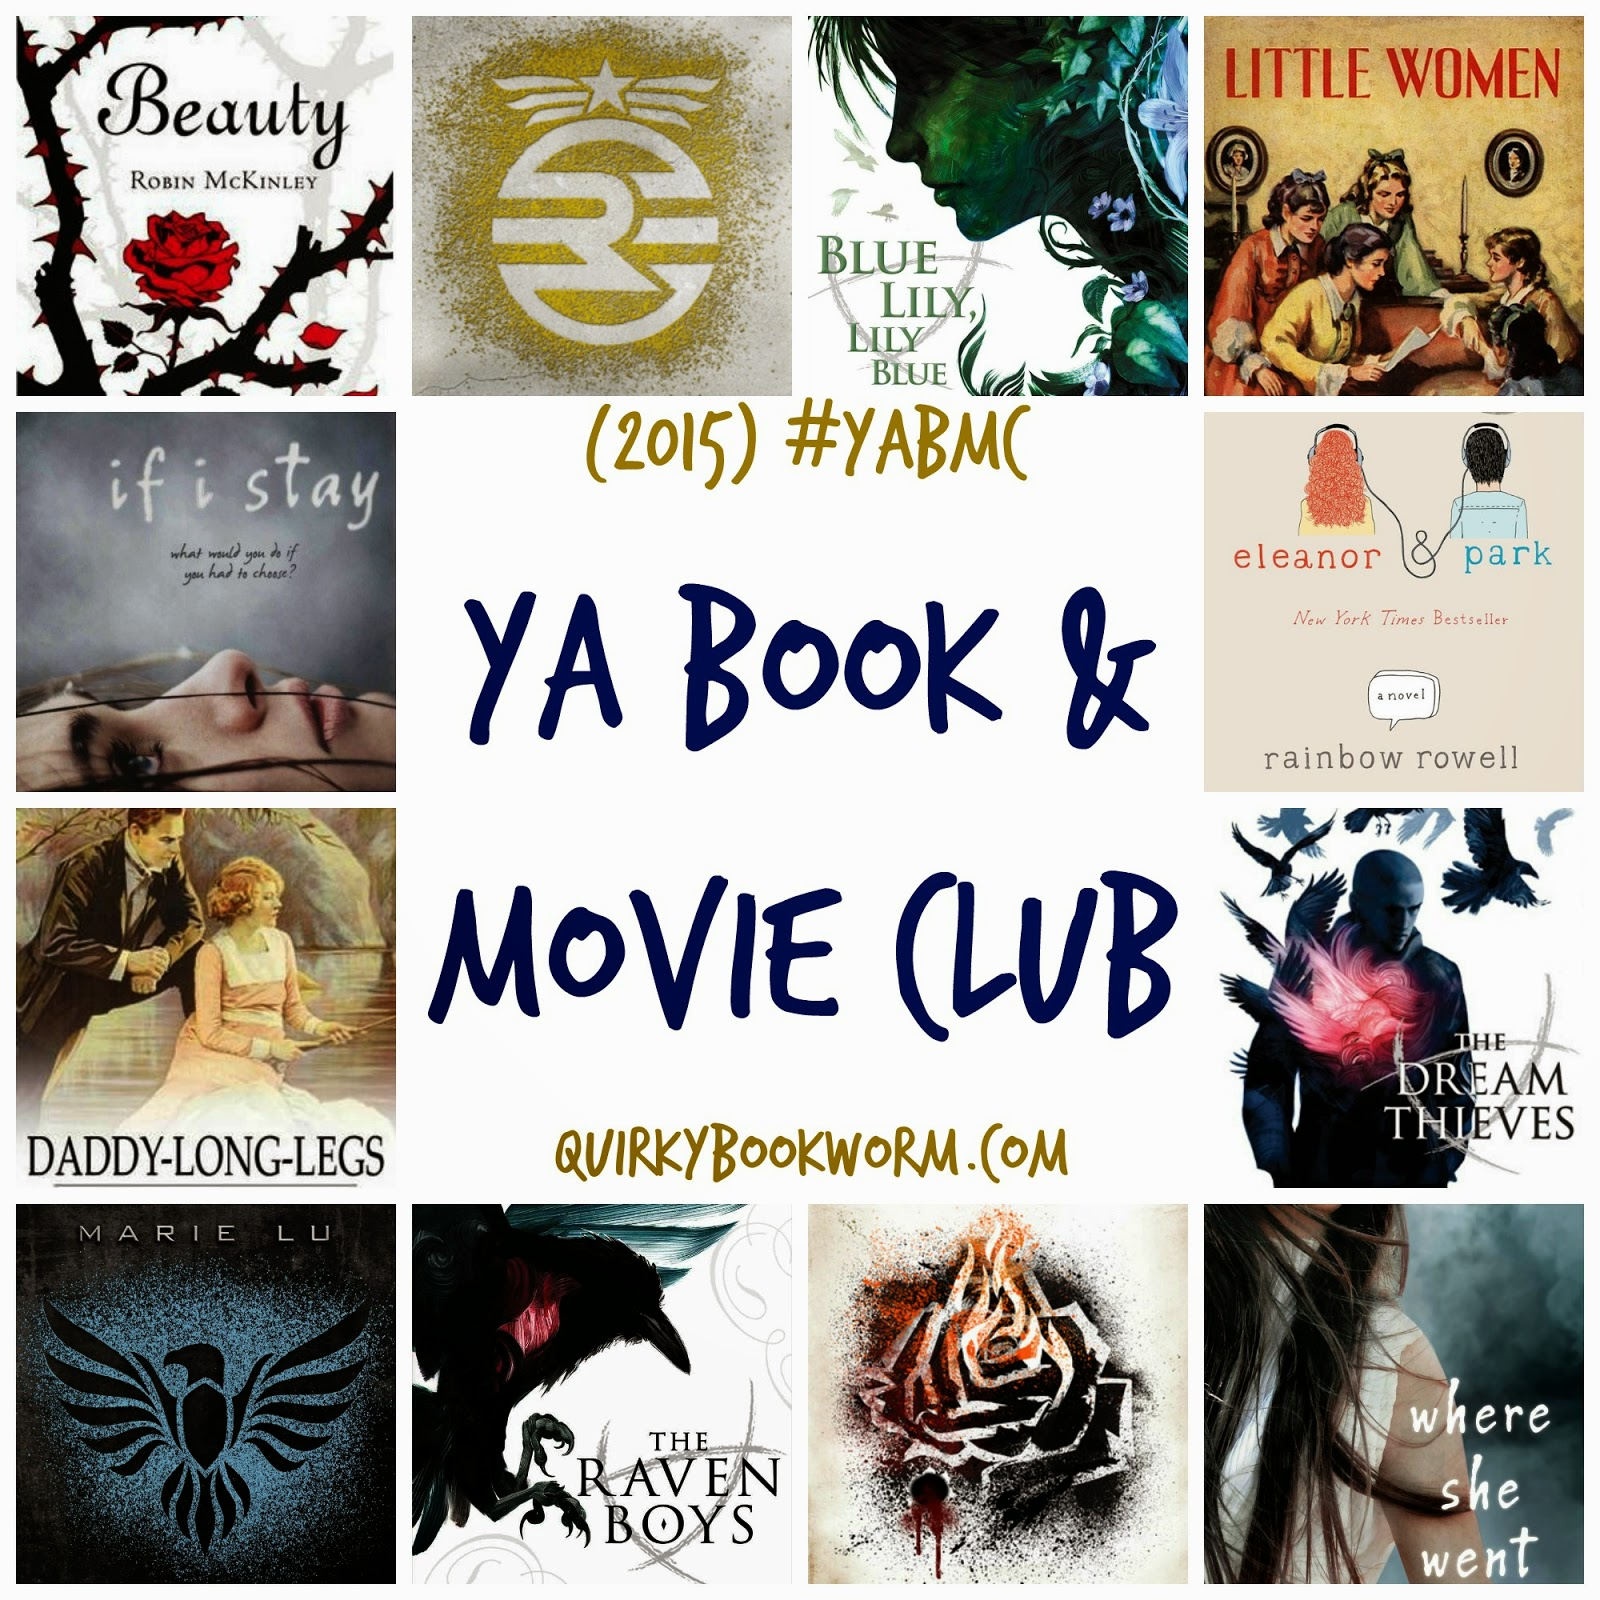 Quirky Bookworm: Young Adult Book and Movie Club selections for 2015, including Marie Lu, Gayle Forman, Maggie Stiefvater, Louisa May Alcott, and more.